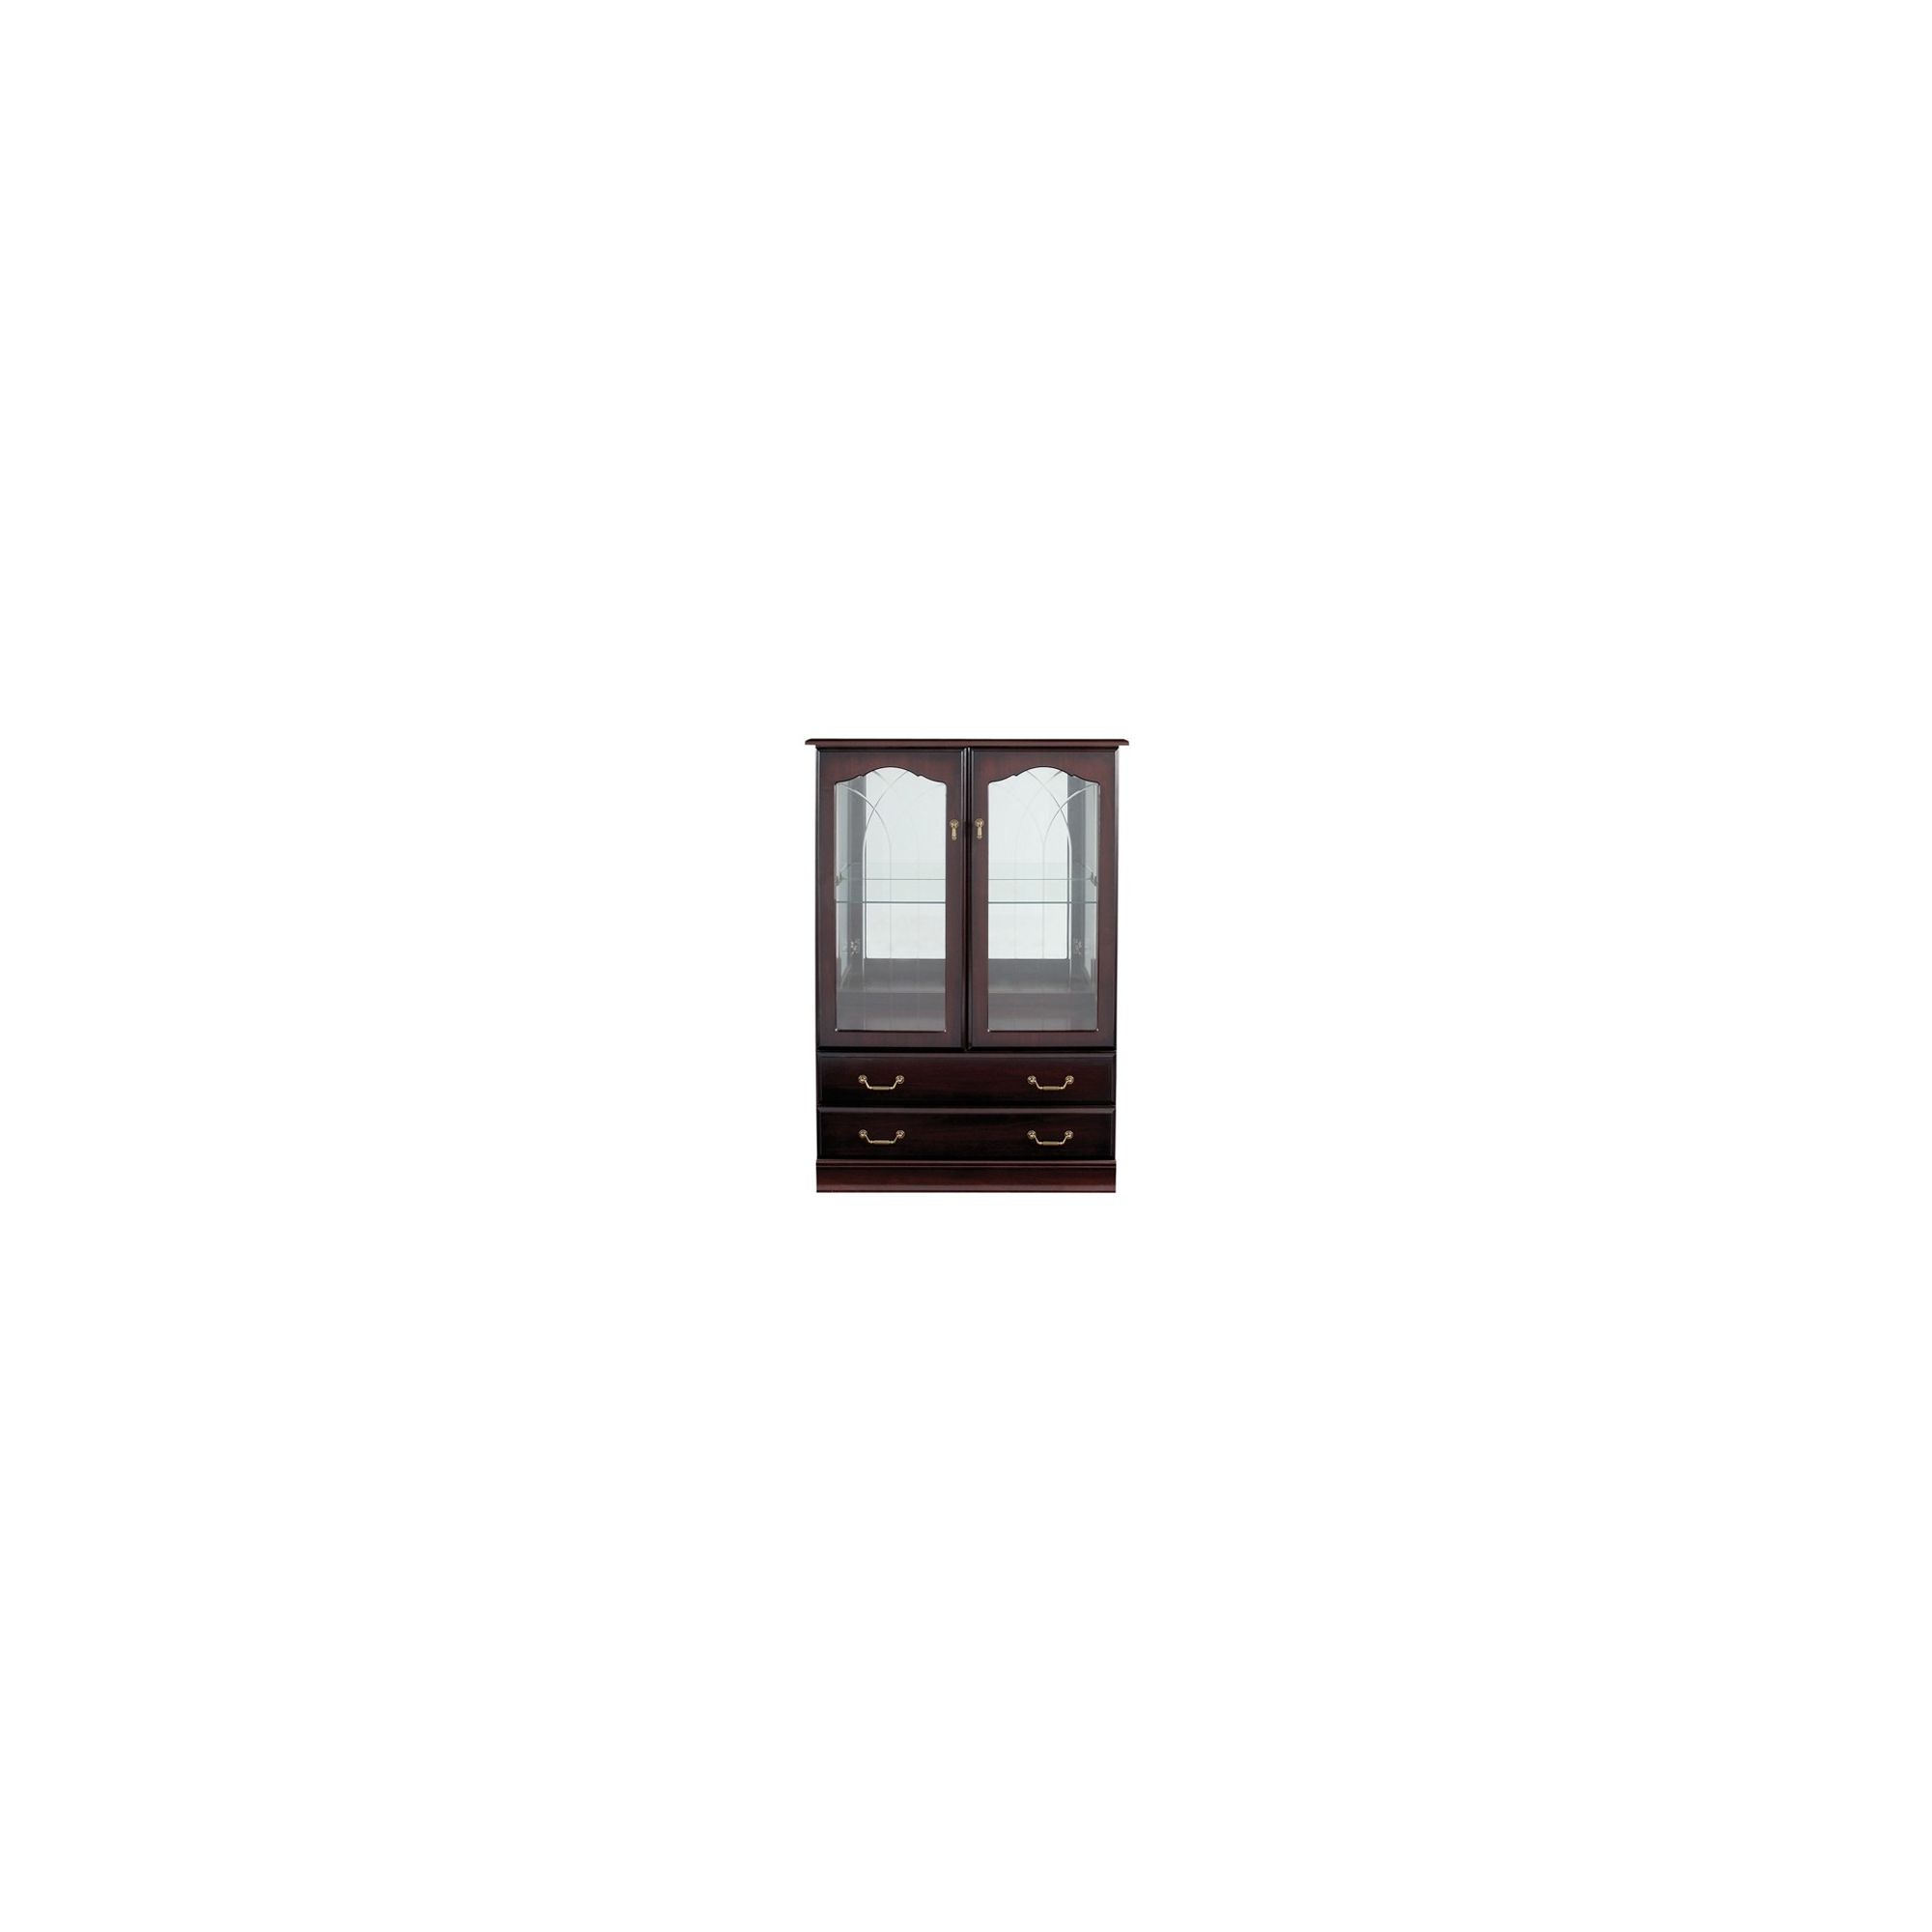 Caxton York 2 Door / 2 Drawer Display Cabinet in Mahogany at Tesco Direct